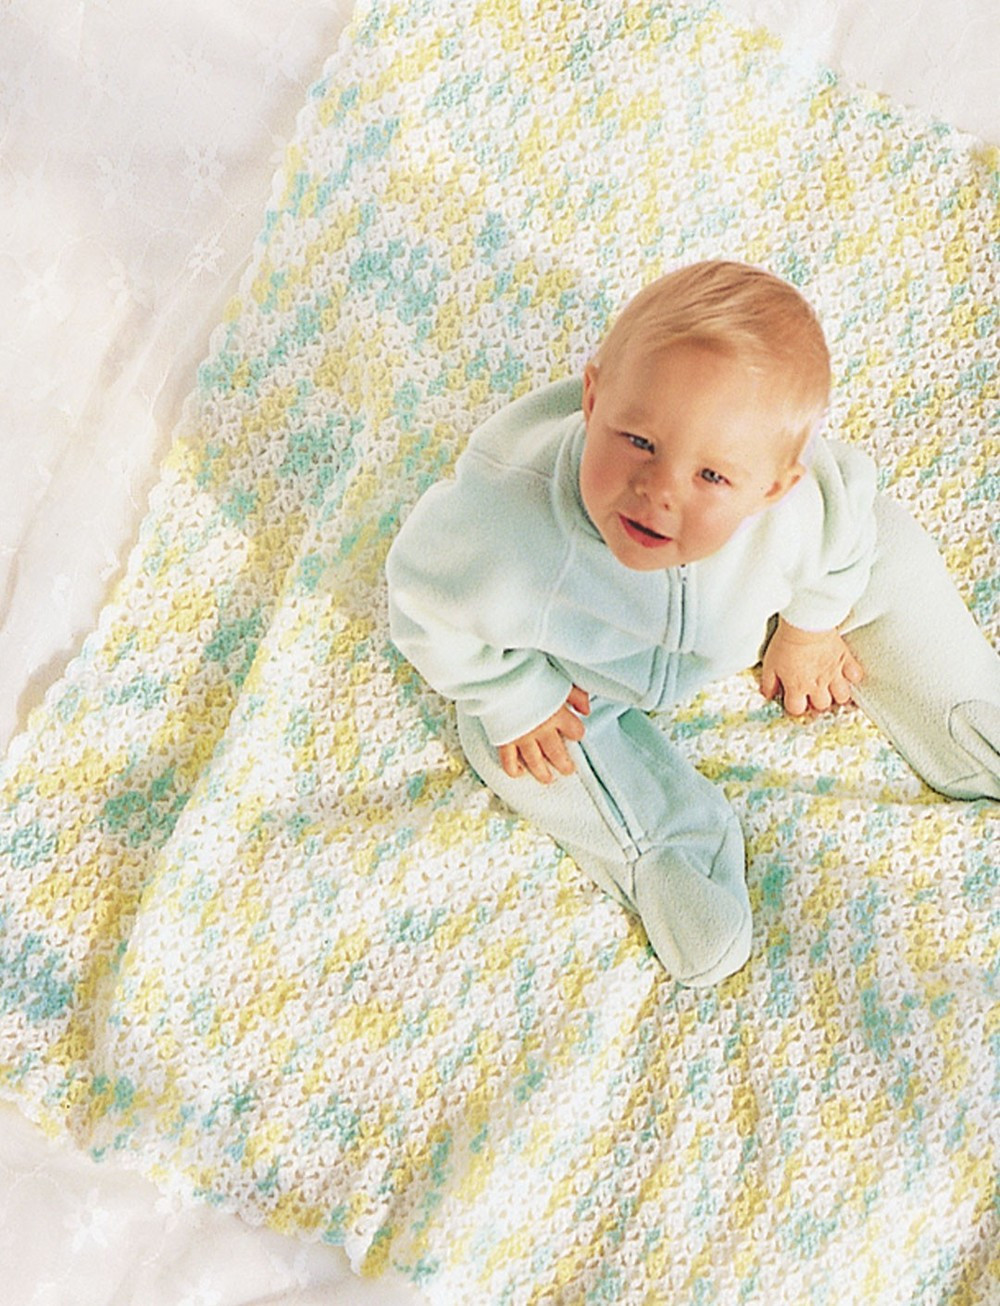 Baby Girl Crochet Blanket Patterns Awesome Baby Afghan Crochet Pattern Of Unique 41 Photos Baby Girl Crochet Blanket Patterns